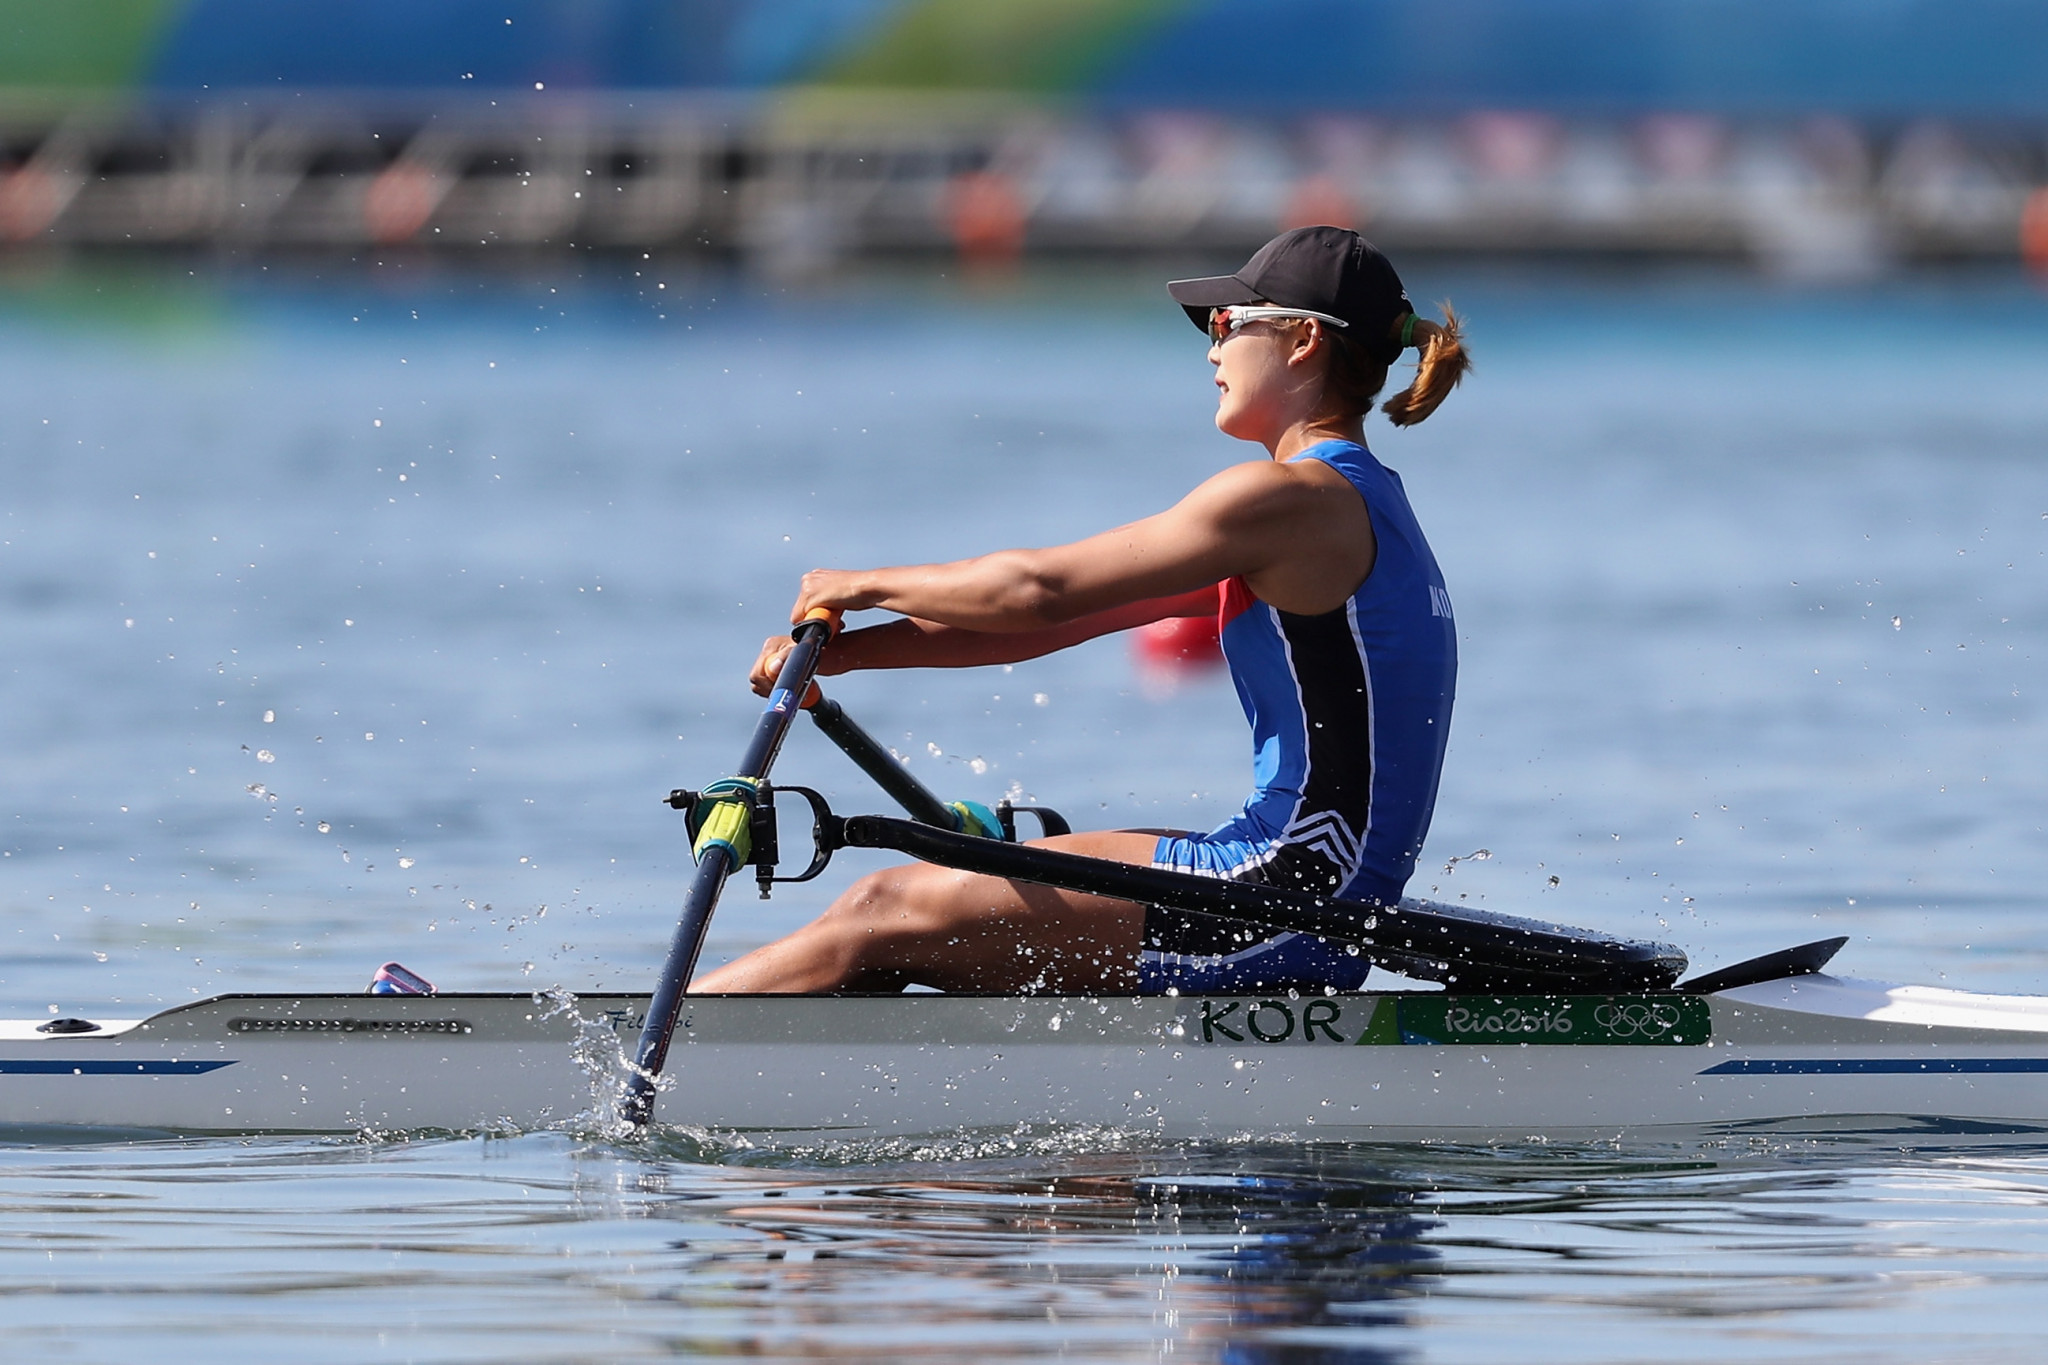 The Executive Committee of World Rowing has agreed to allow joint crews from North and South Korea to try to qualify for Tokyo 2020 in a number of events ©Getty Images